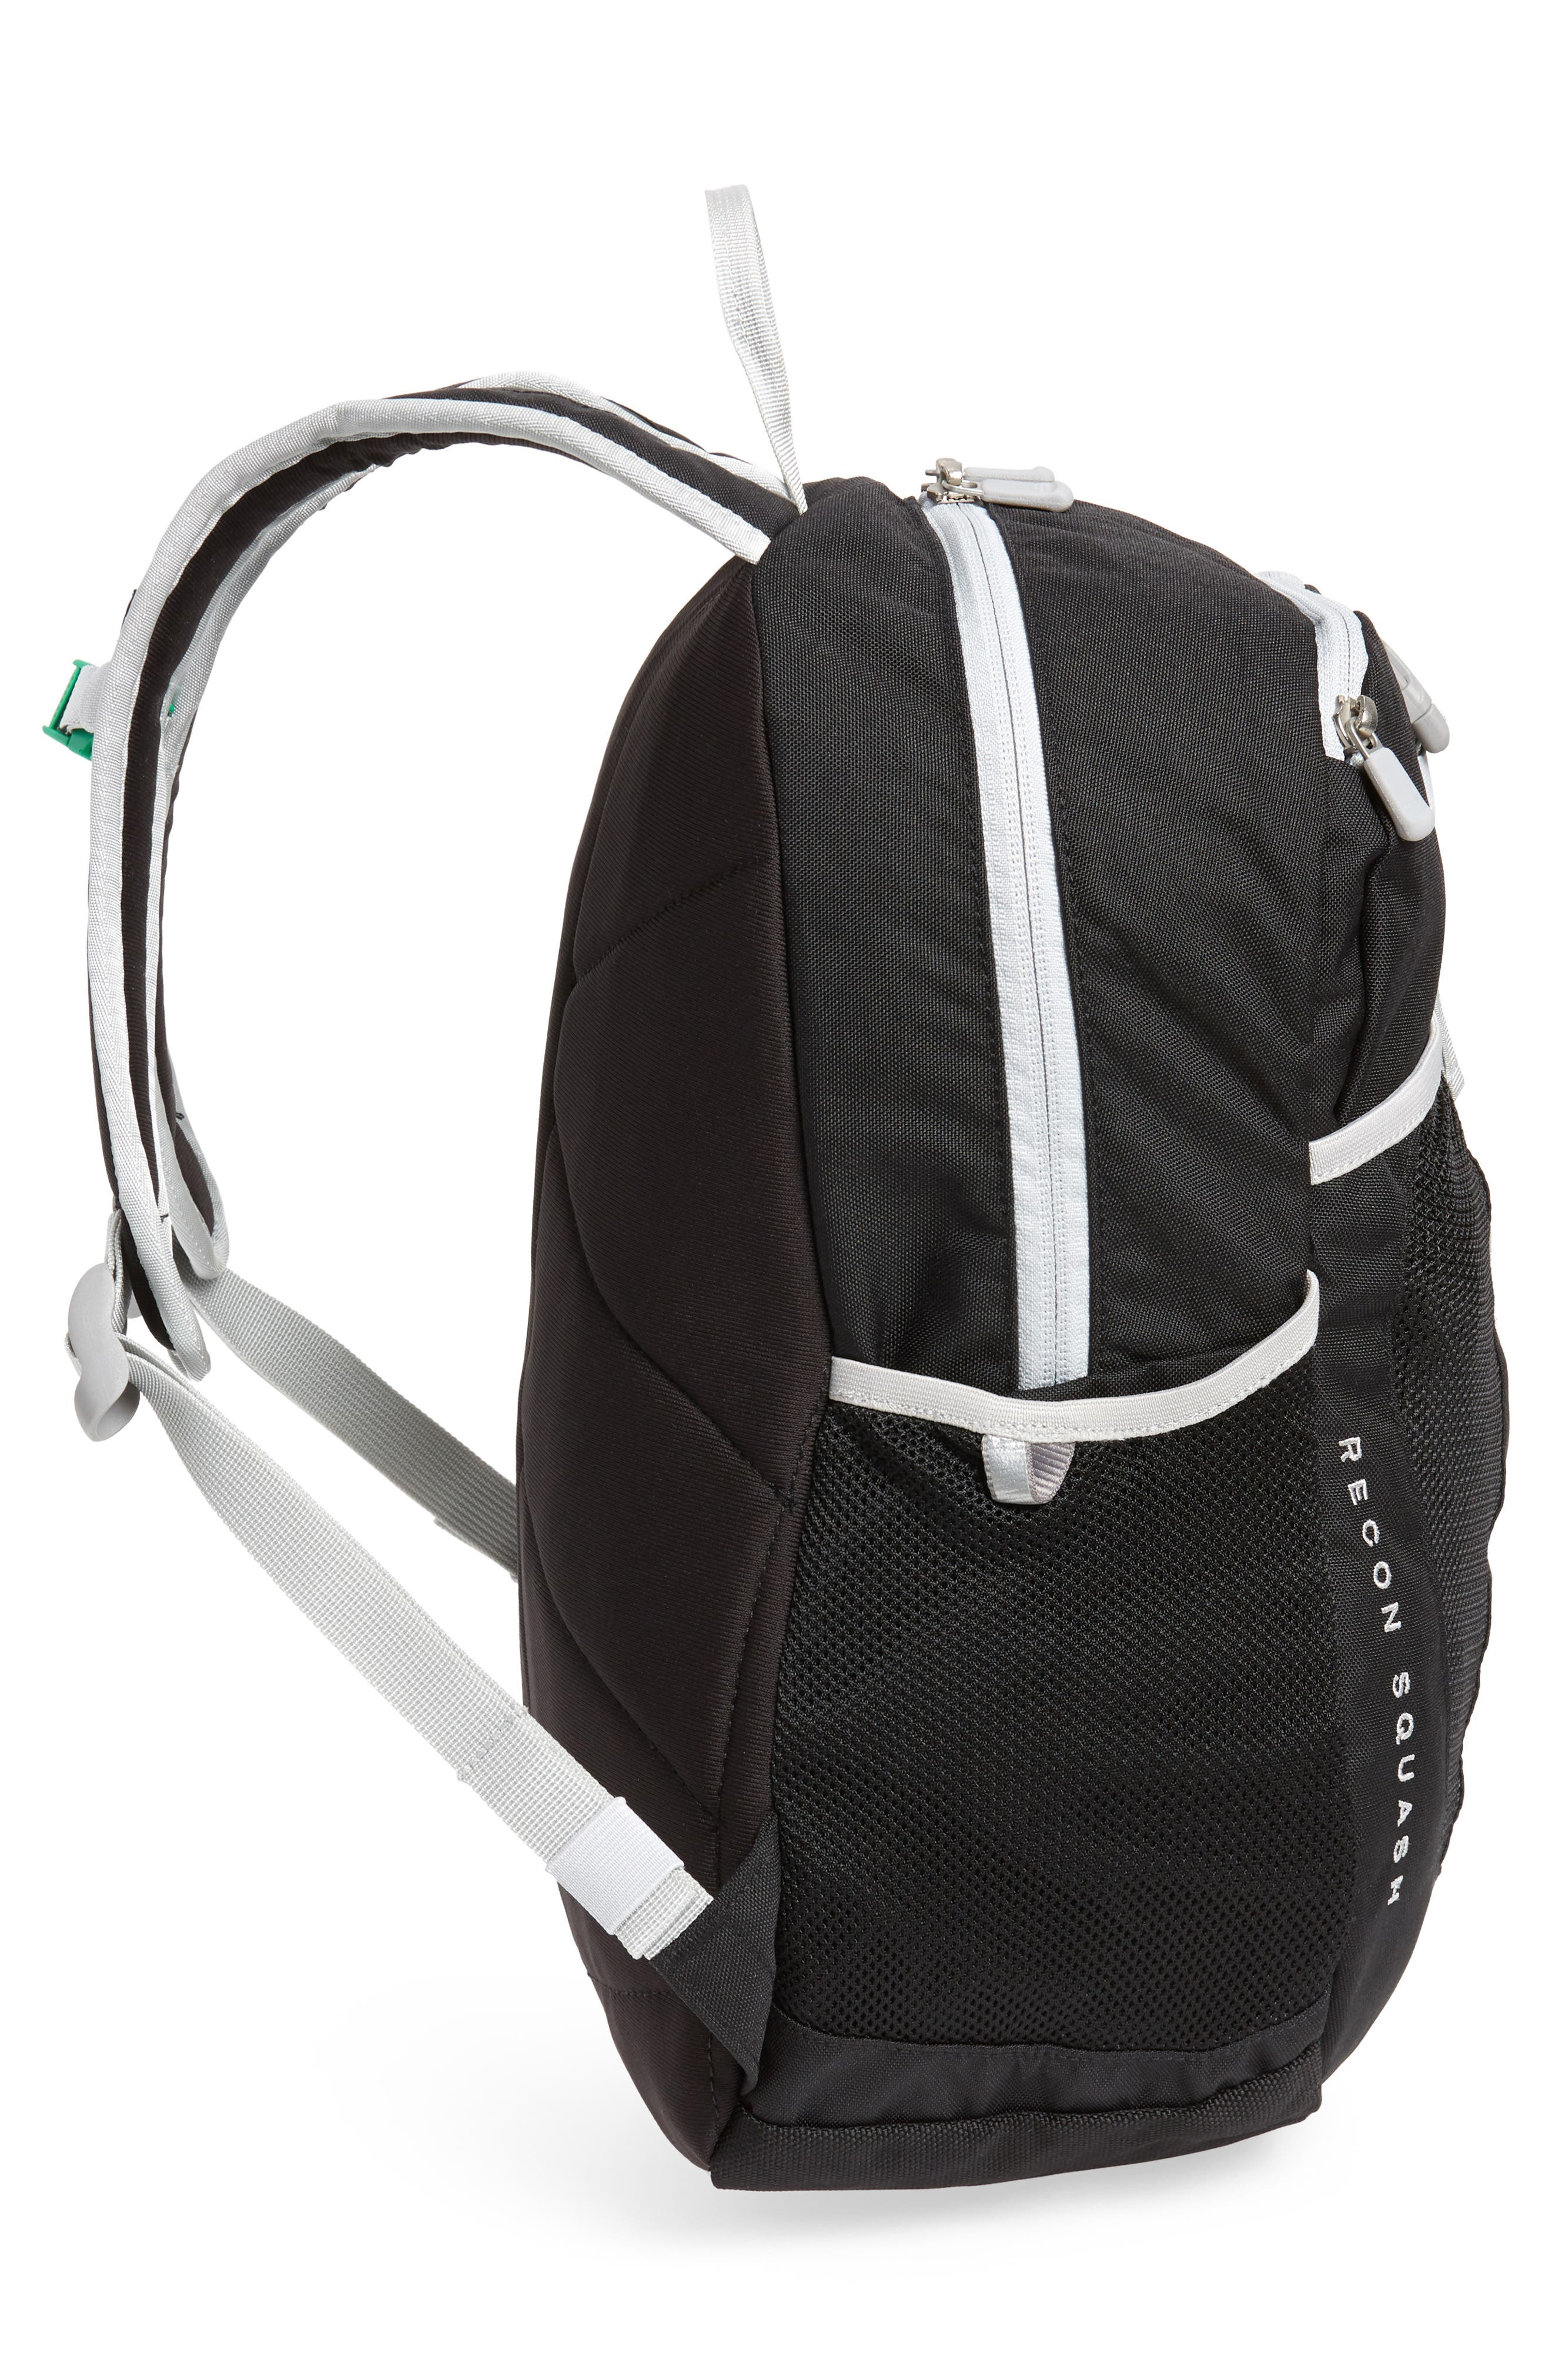 Recon Squash Backpack,                             Alternate thumbnail 4, color,                             001